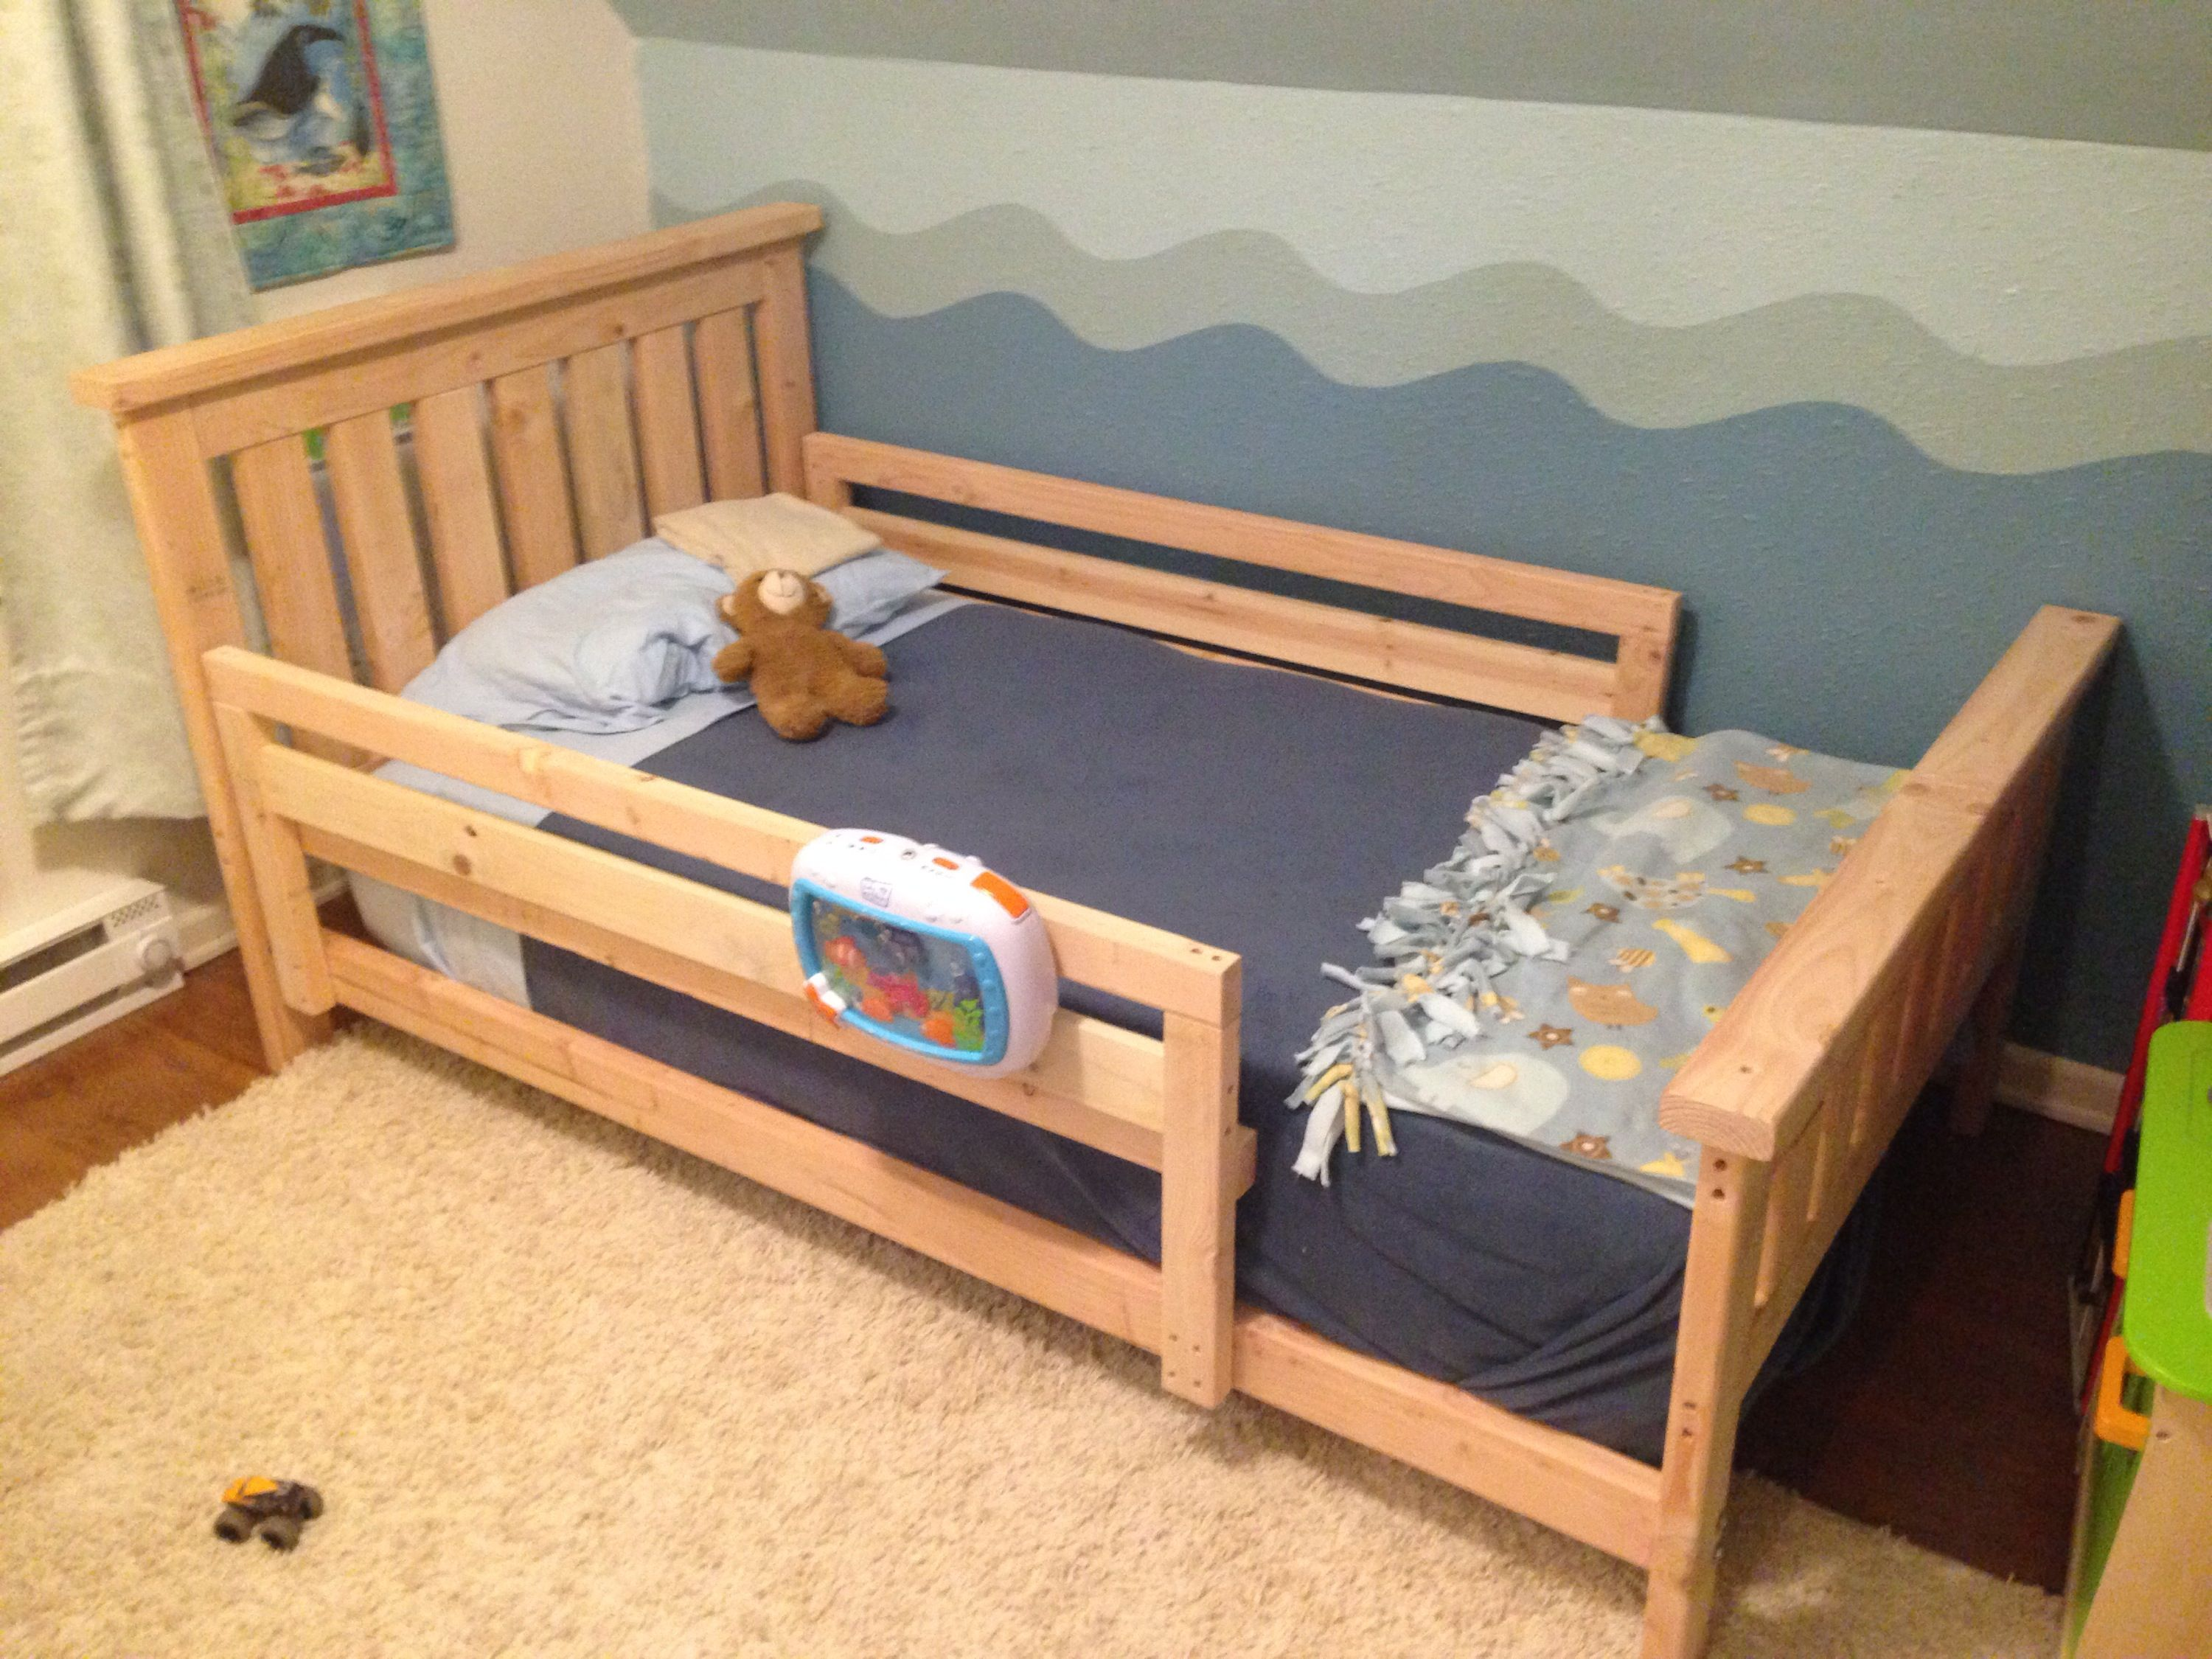 Diy 2x4 Bed Frame Howtospecialist How To Build Step By Step